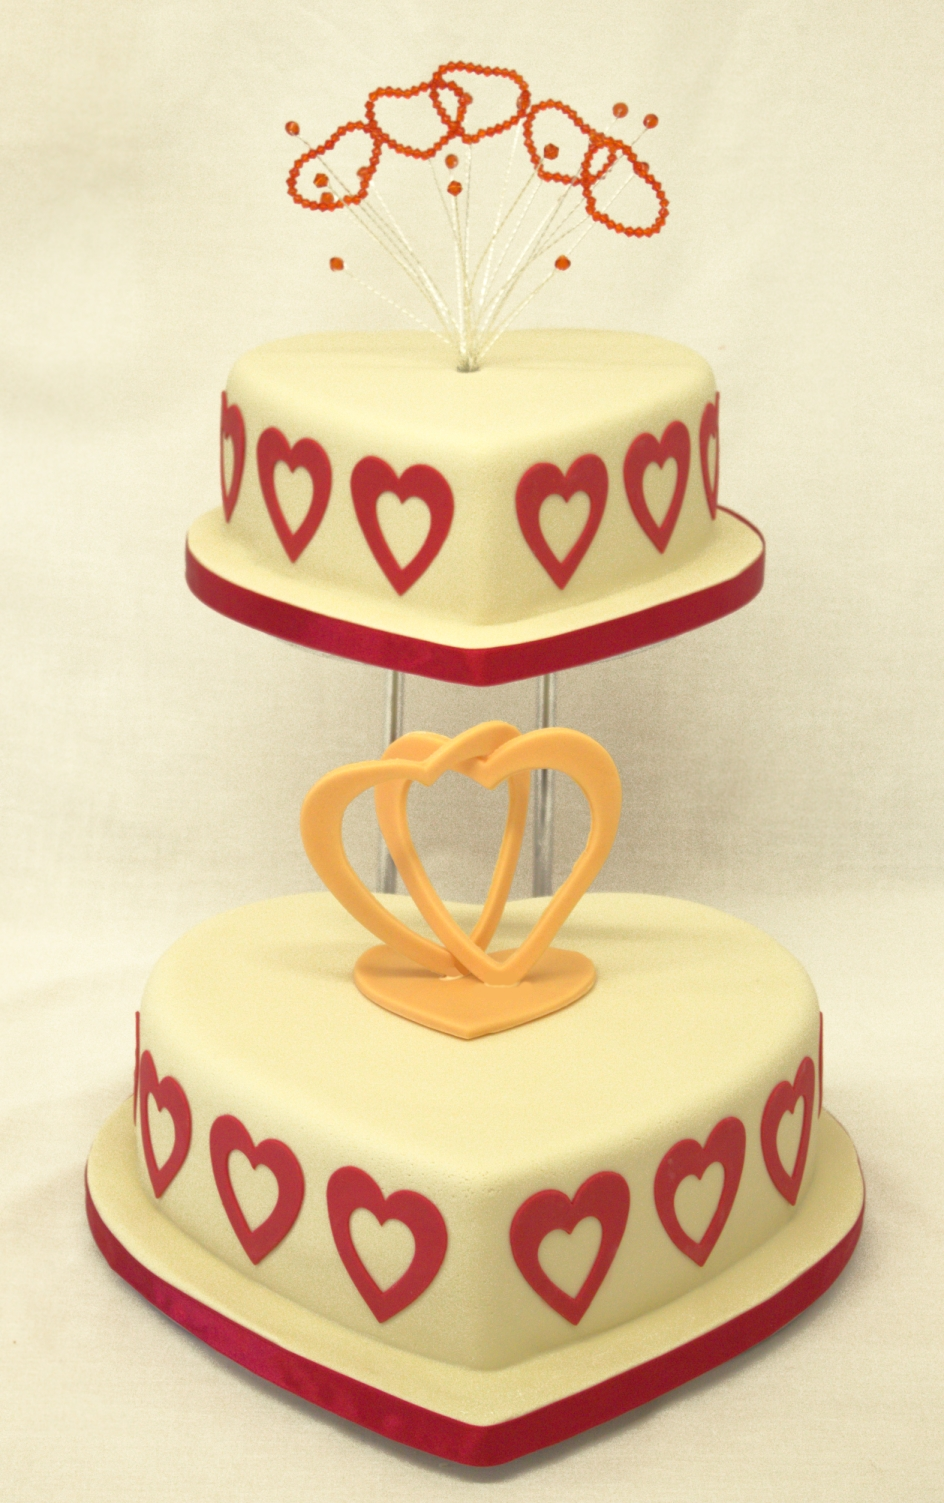 Barker Bakes love forever cake with heart crystal topper